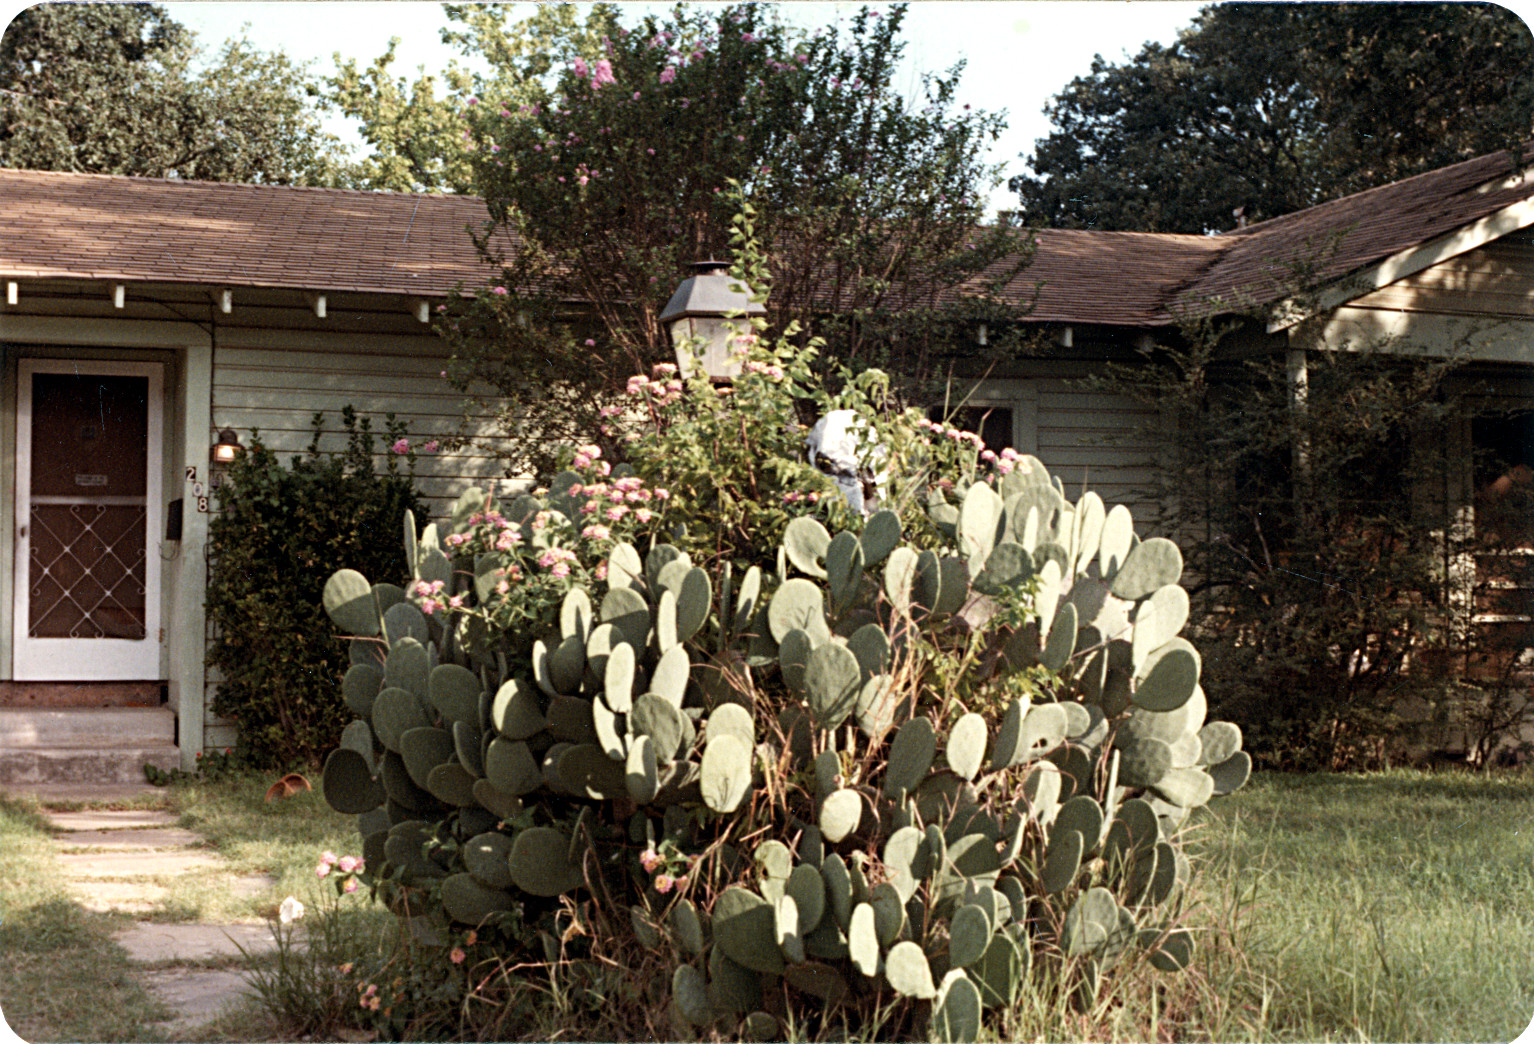 Another view of the Cactus.